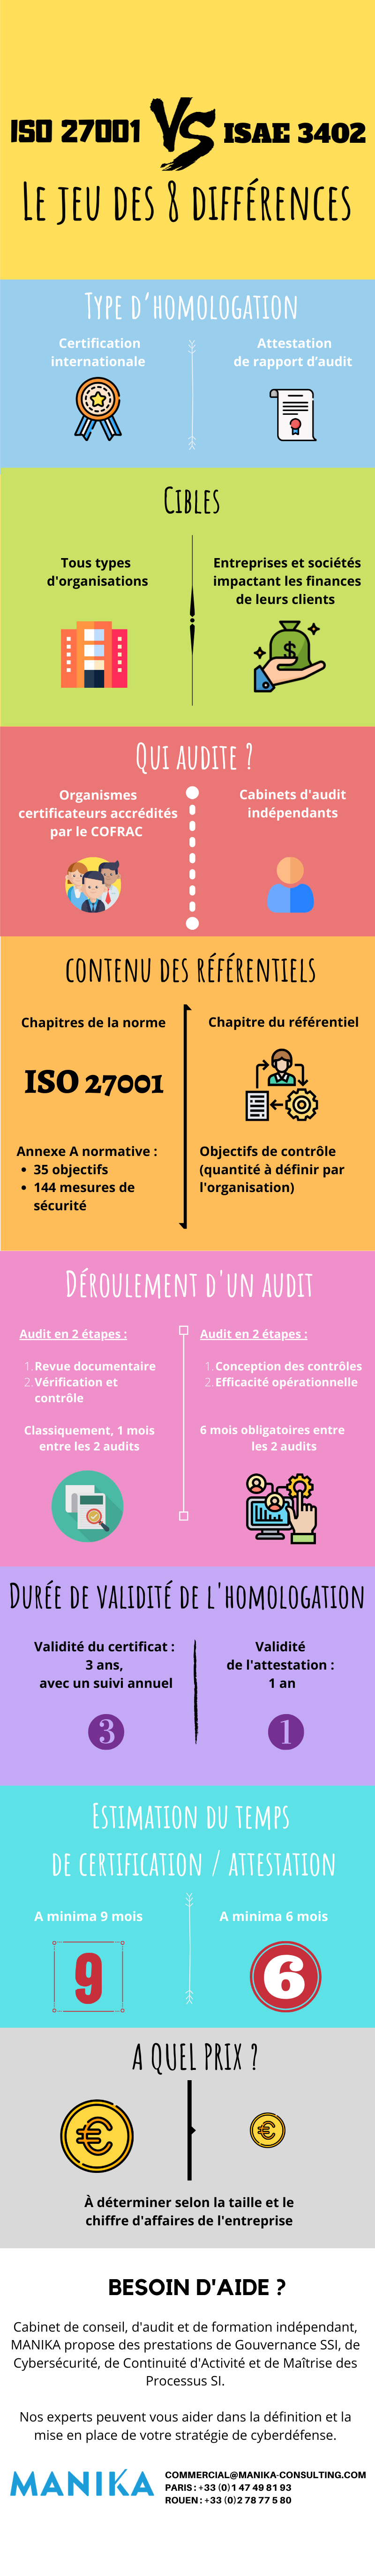 infographie iso 27001 vs ISAE3402